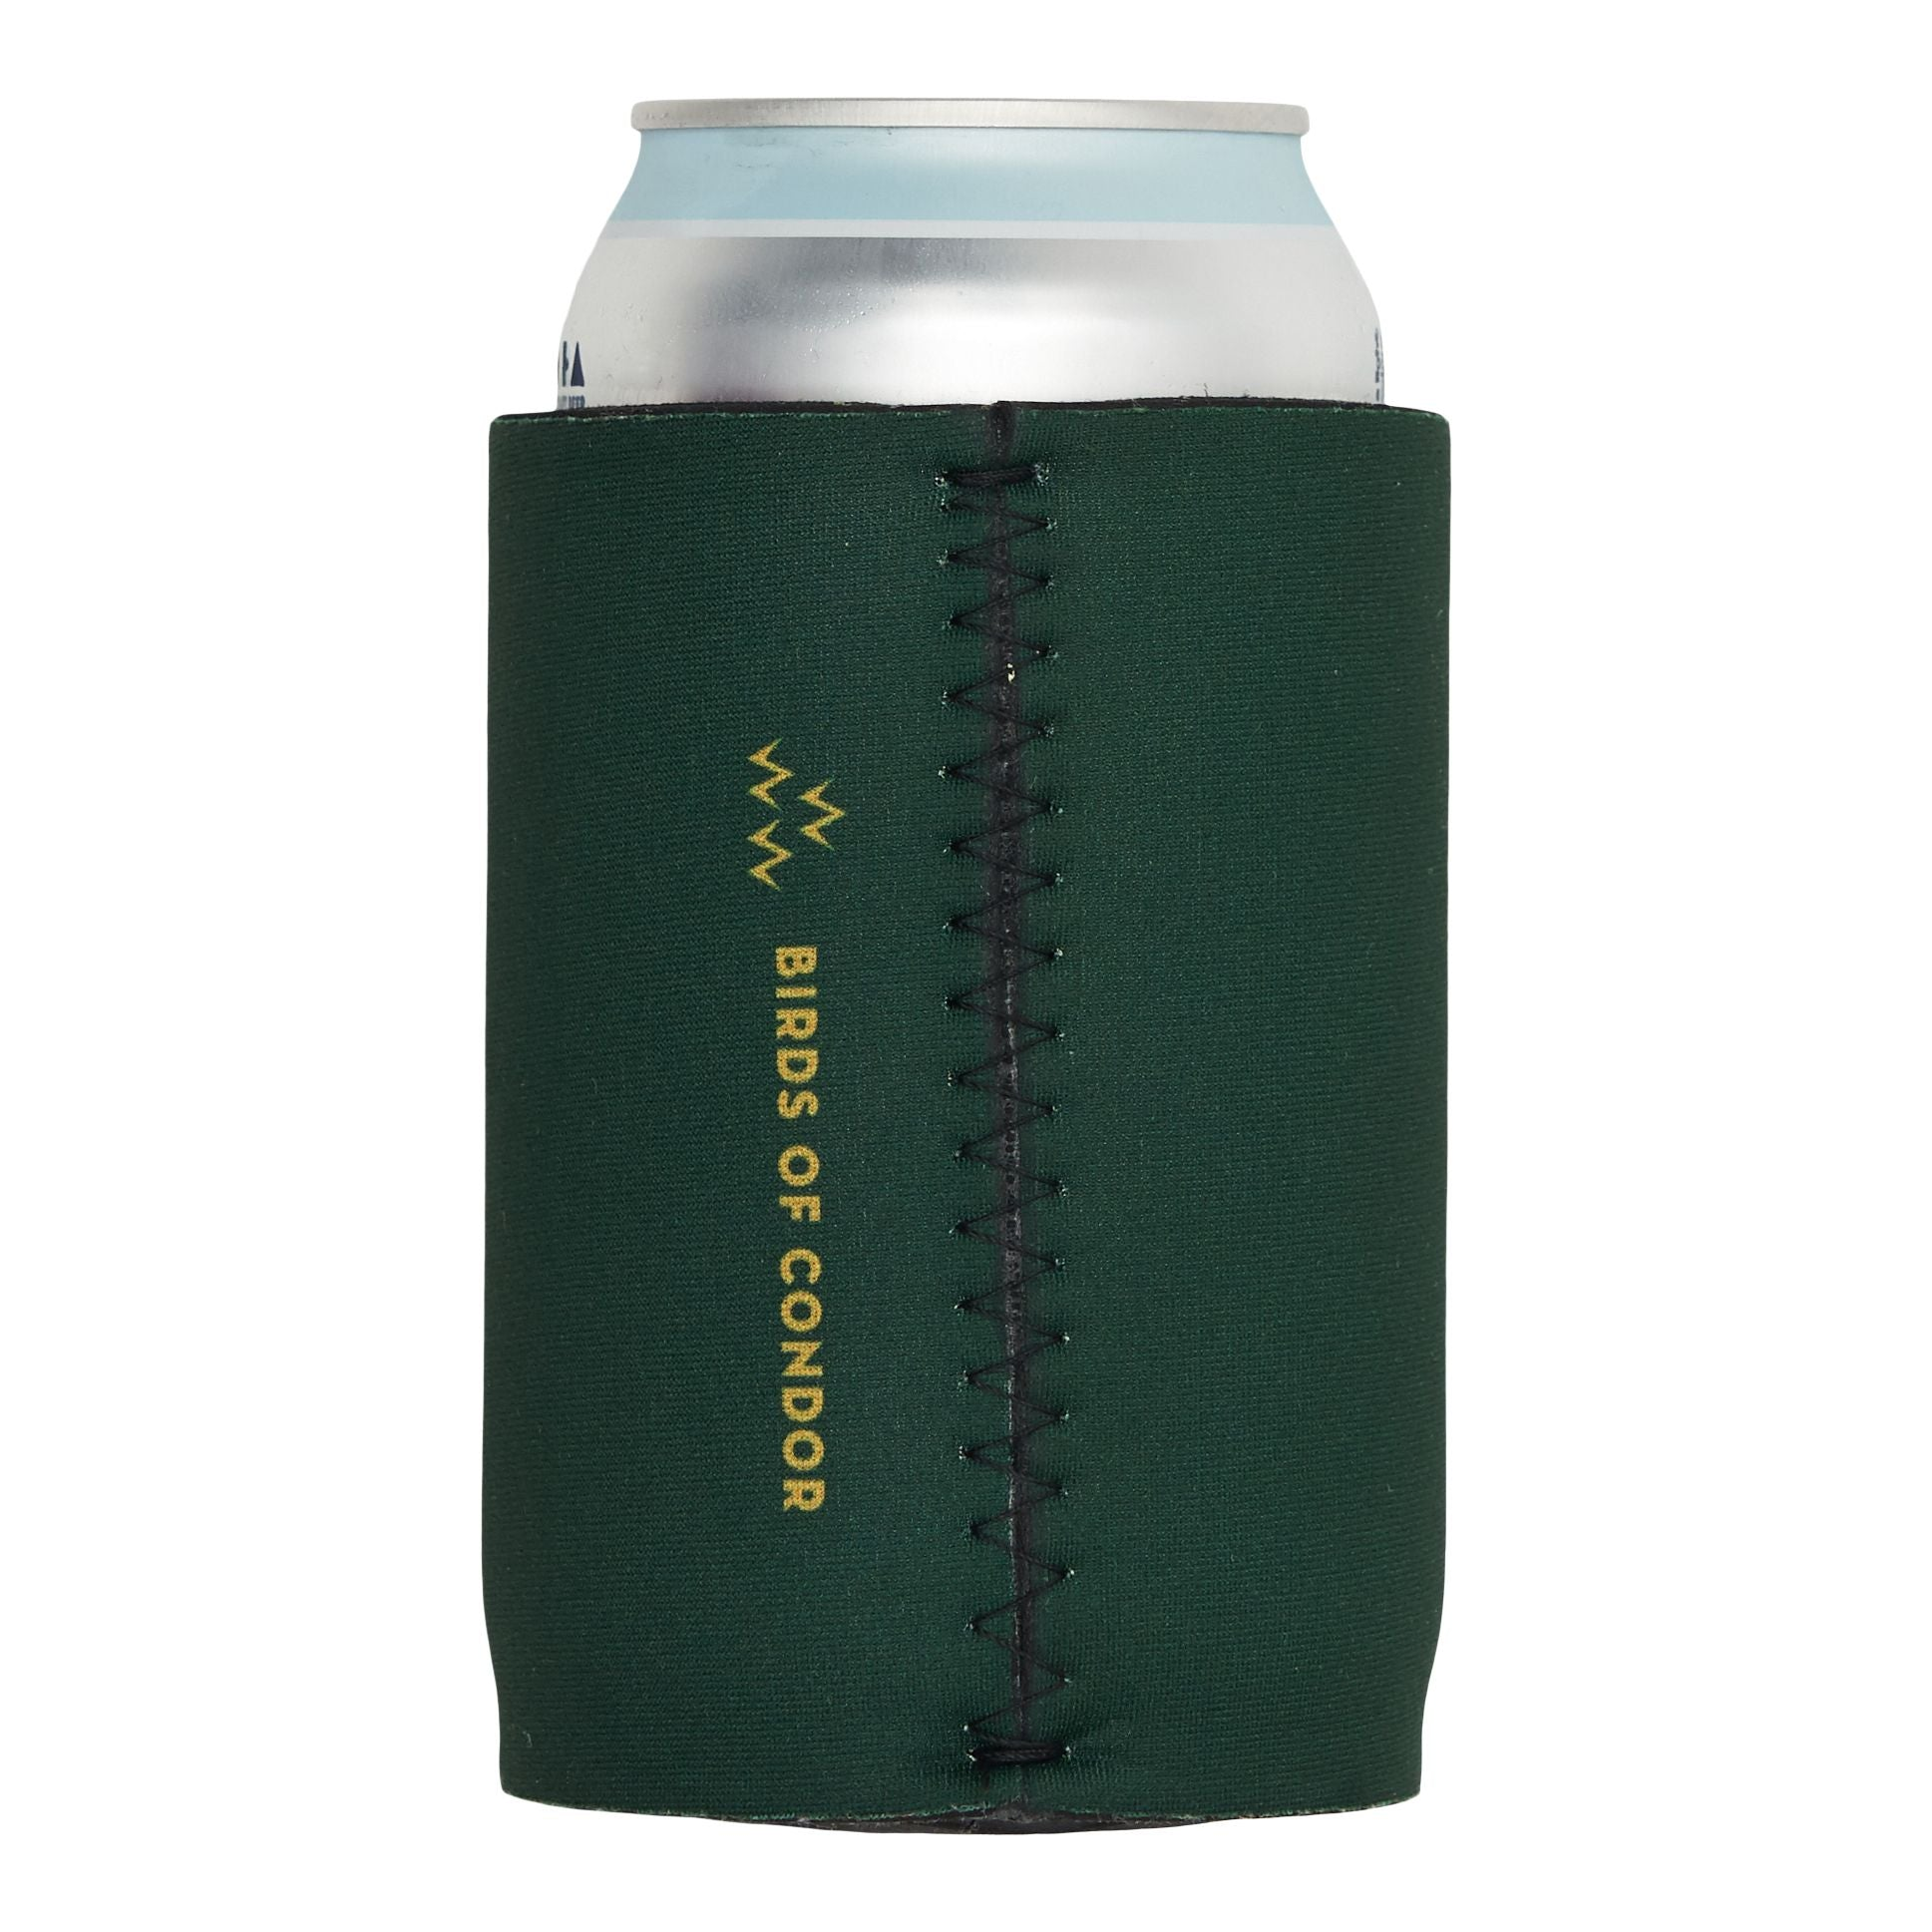 birds-of-condor-cheech-and-chong-golf-stubby-cooler-beer-koozie